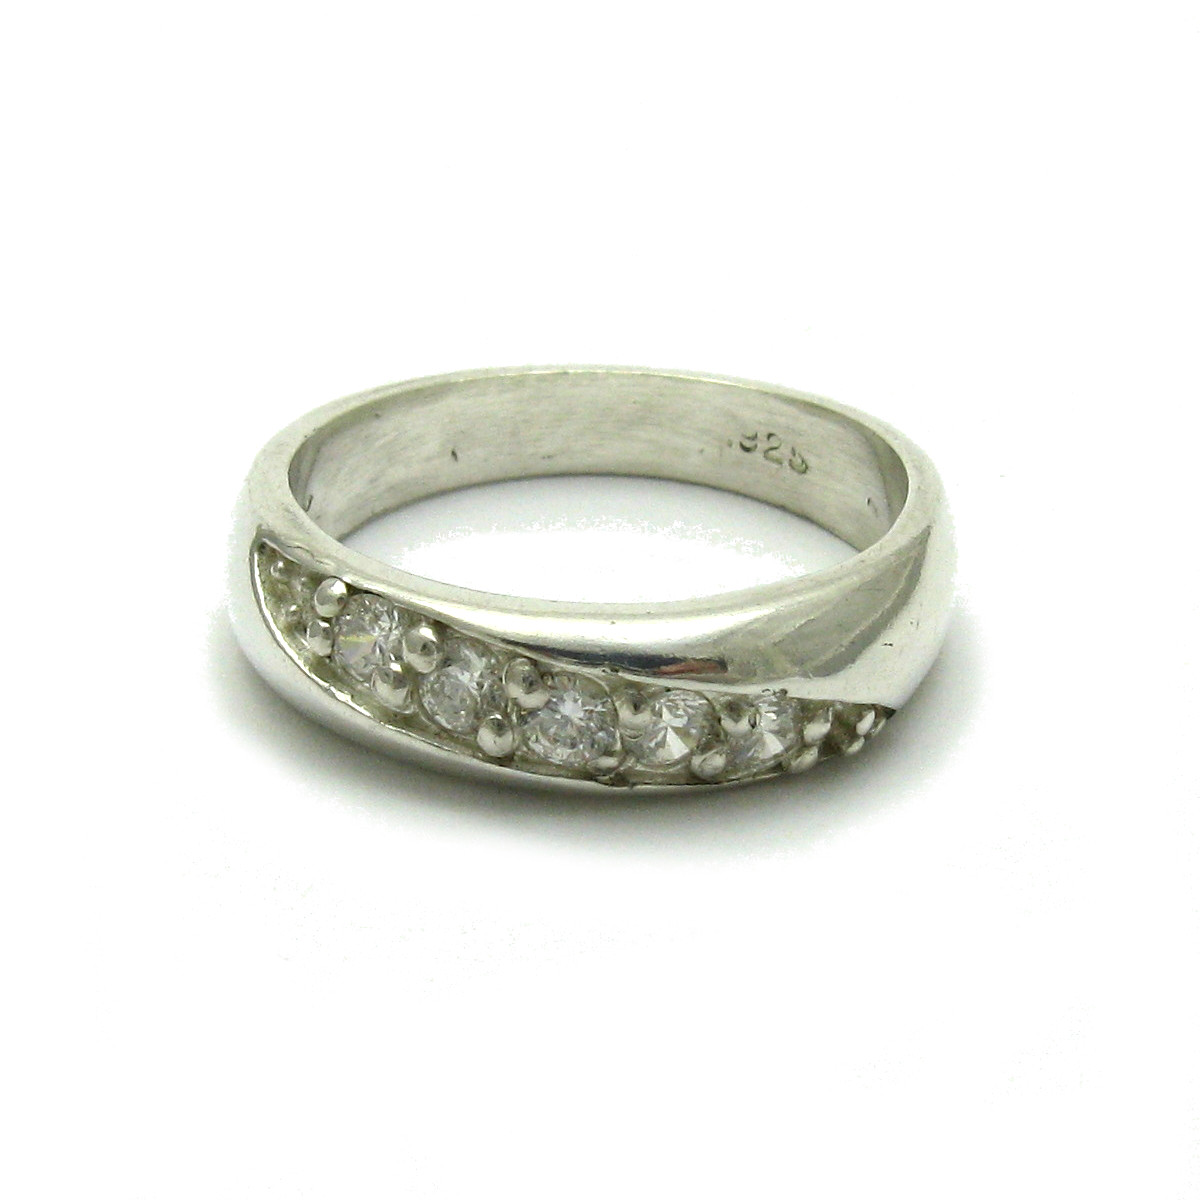 Silver ring - R000577